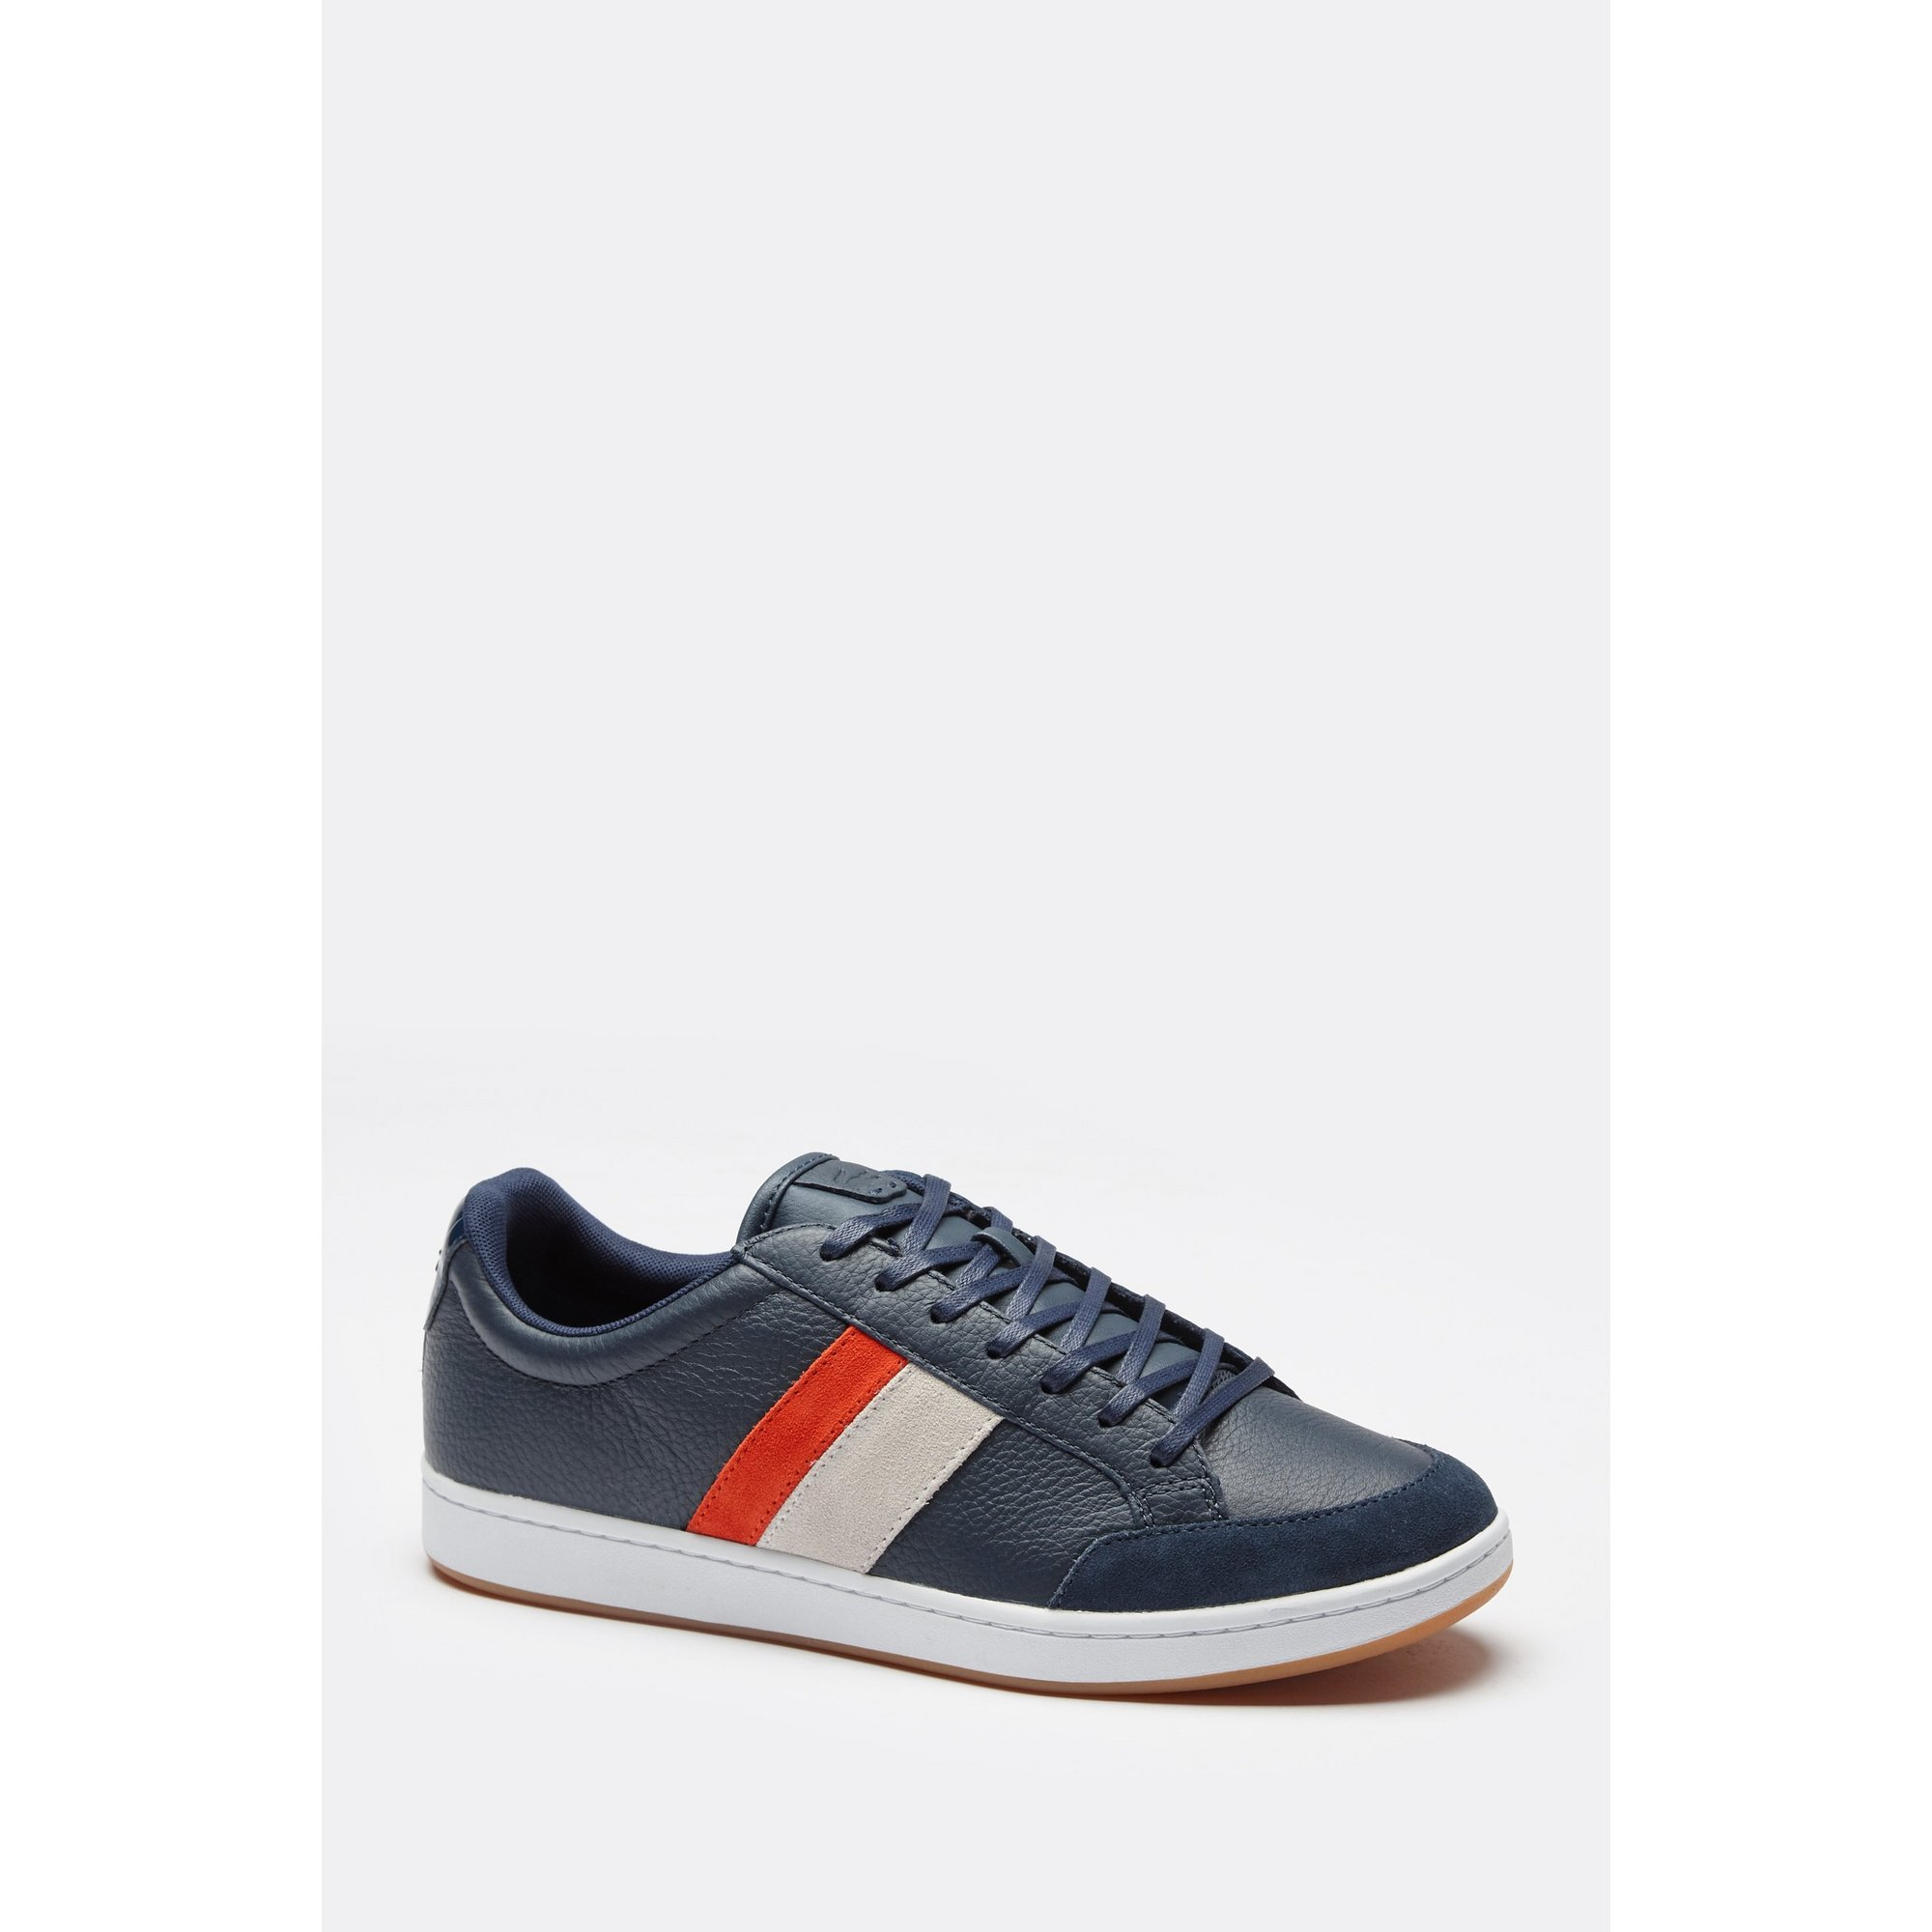 Image of Lacoste Carnaby Ace Trainers